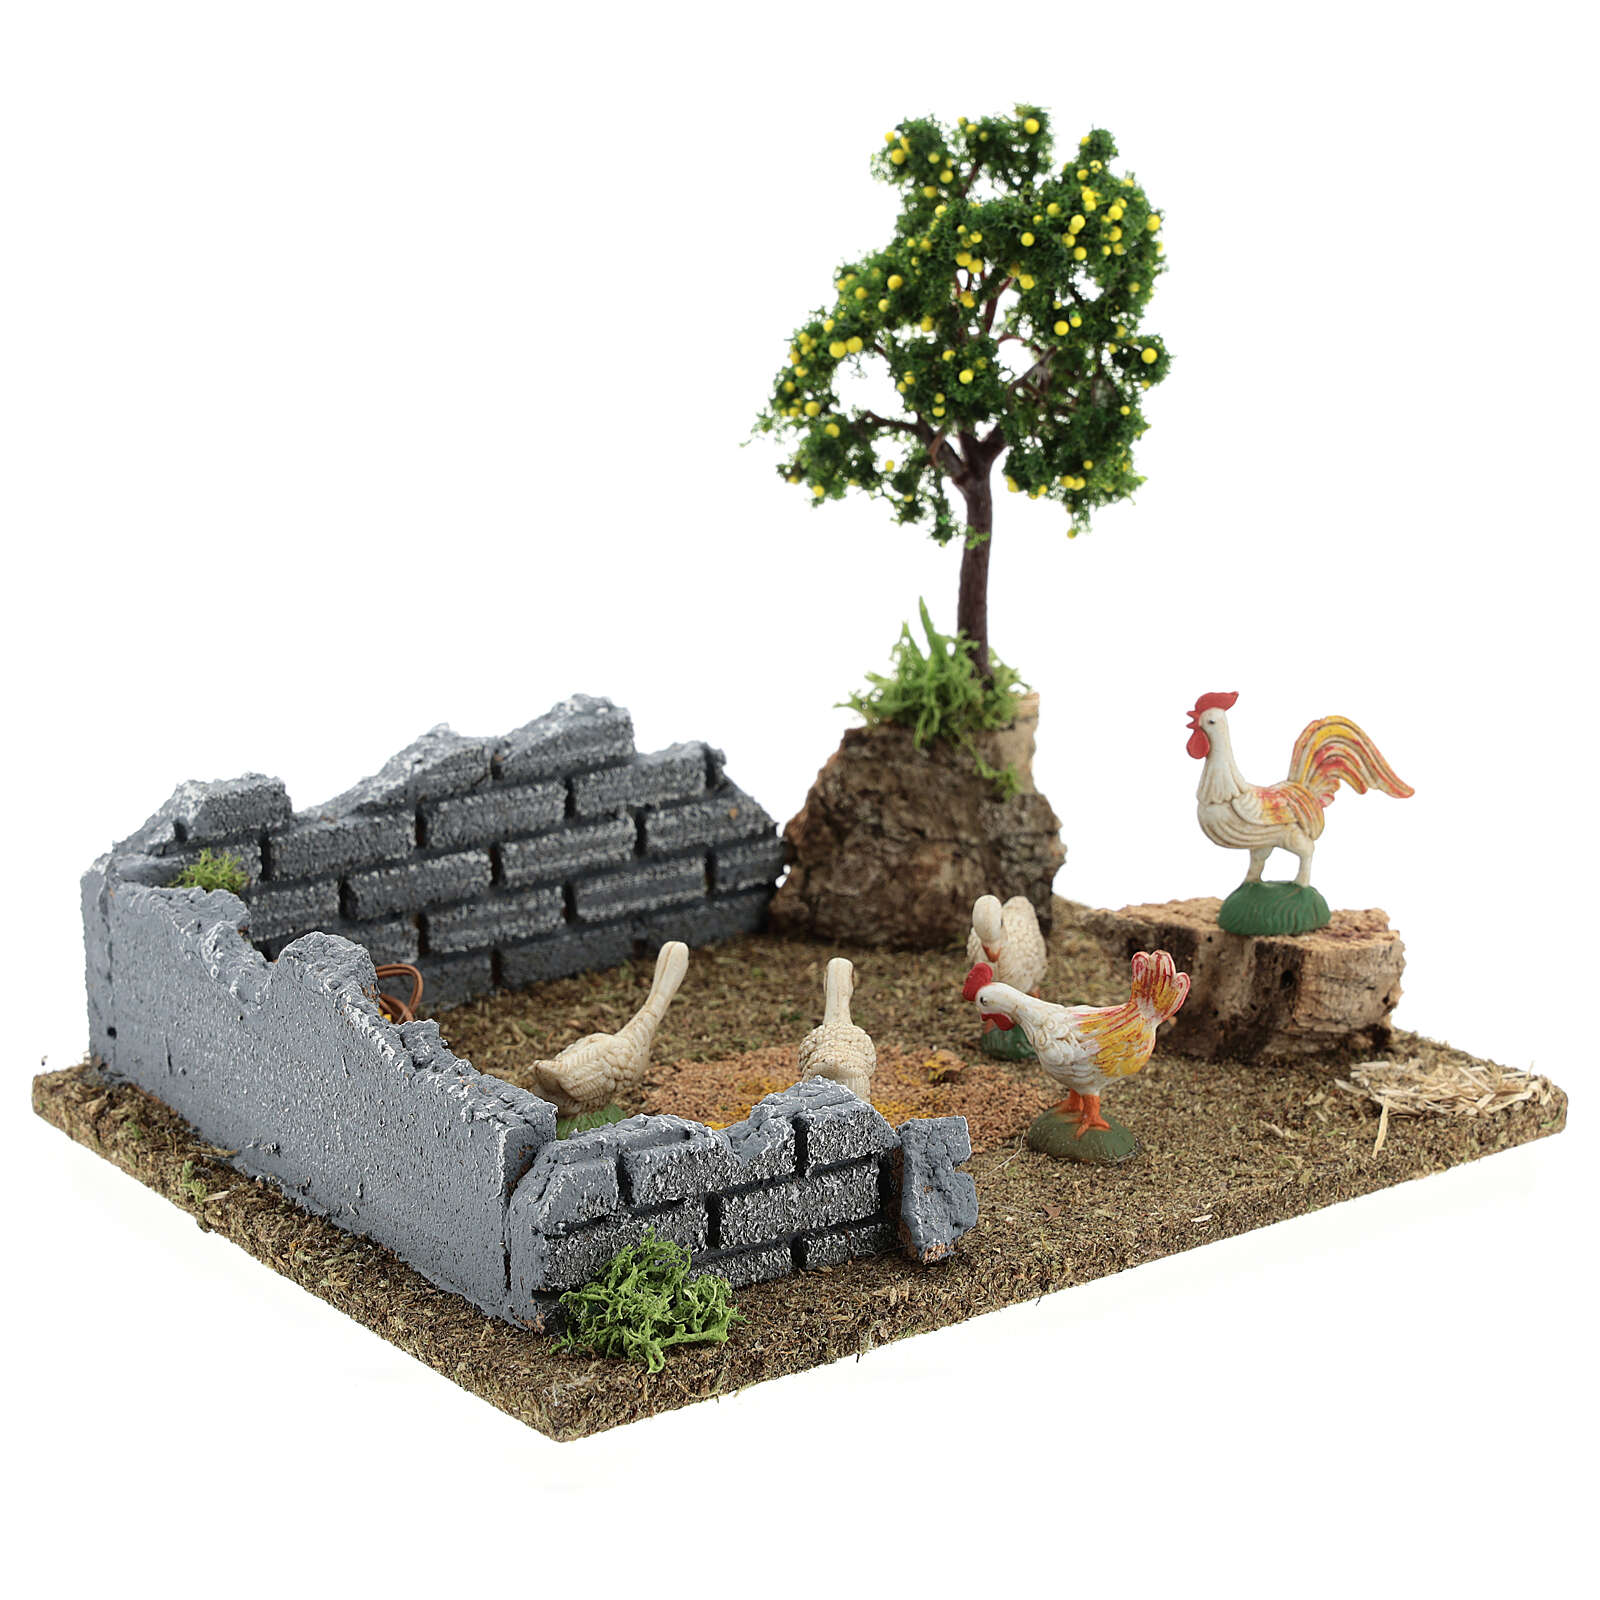 Chicken coop with lemon tree, 8-12 cm nativity 20x15x15 cm 4